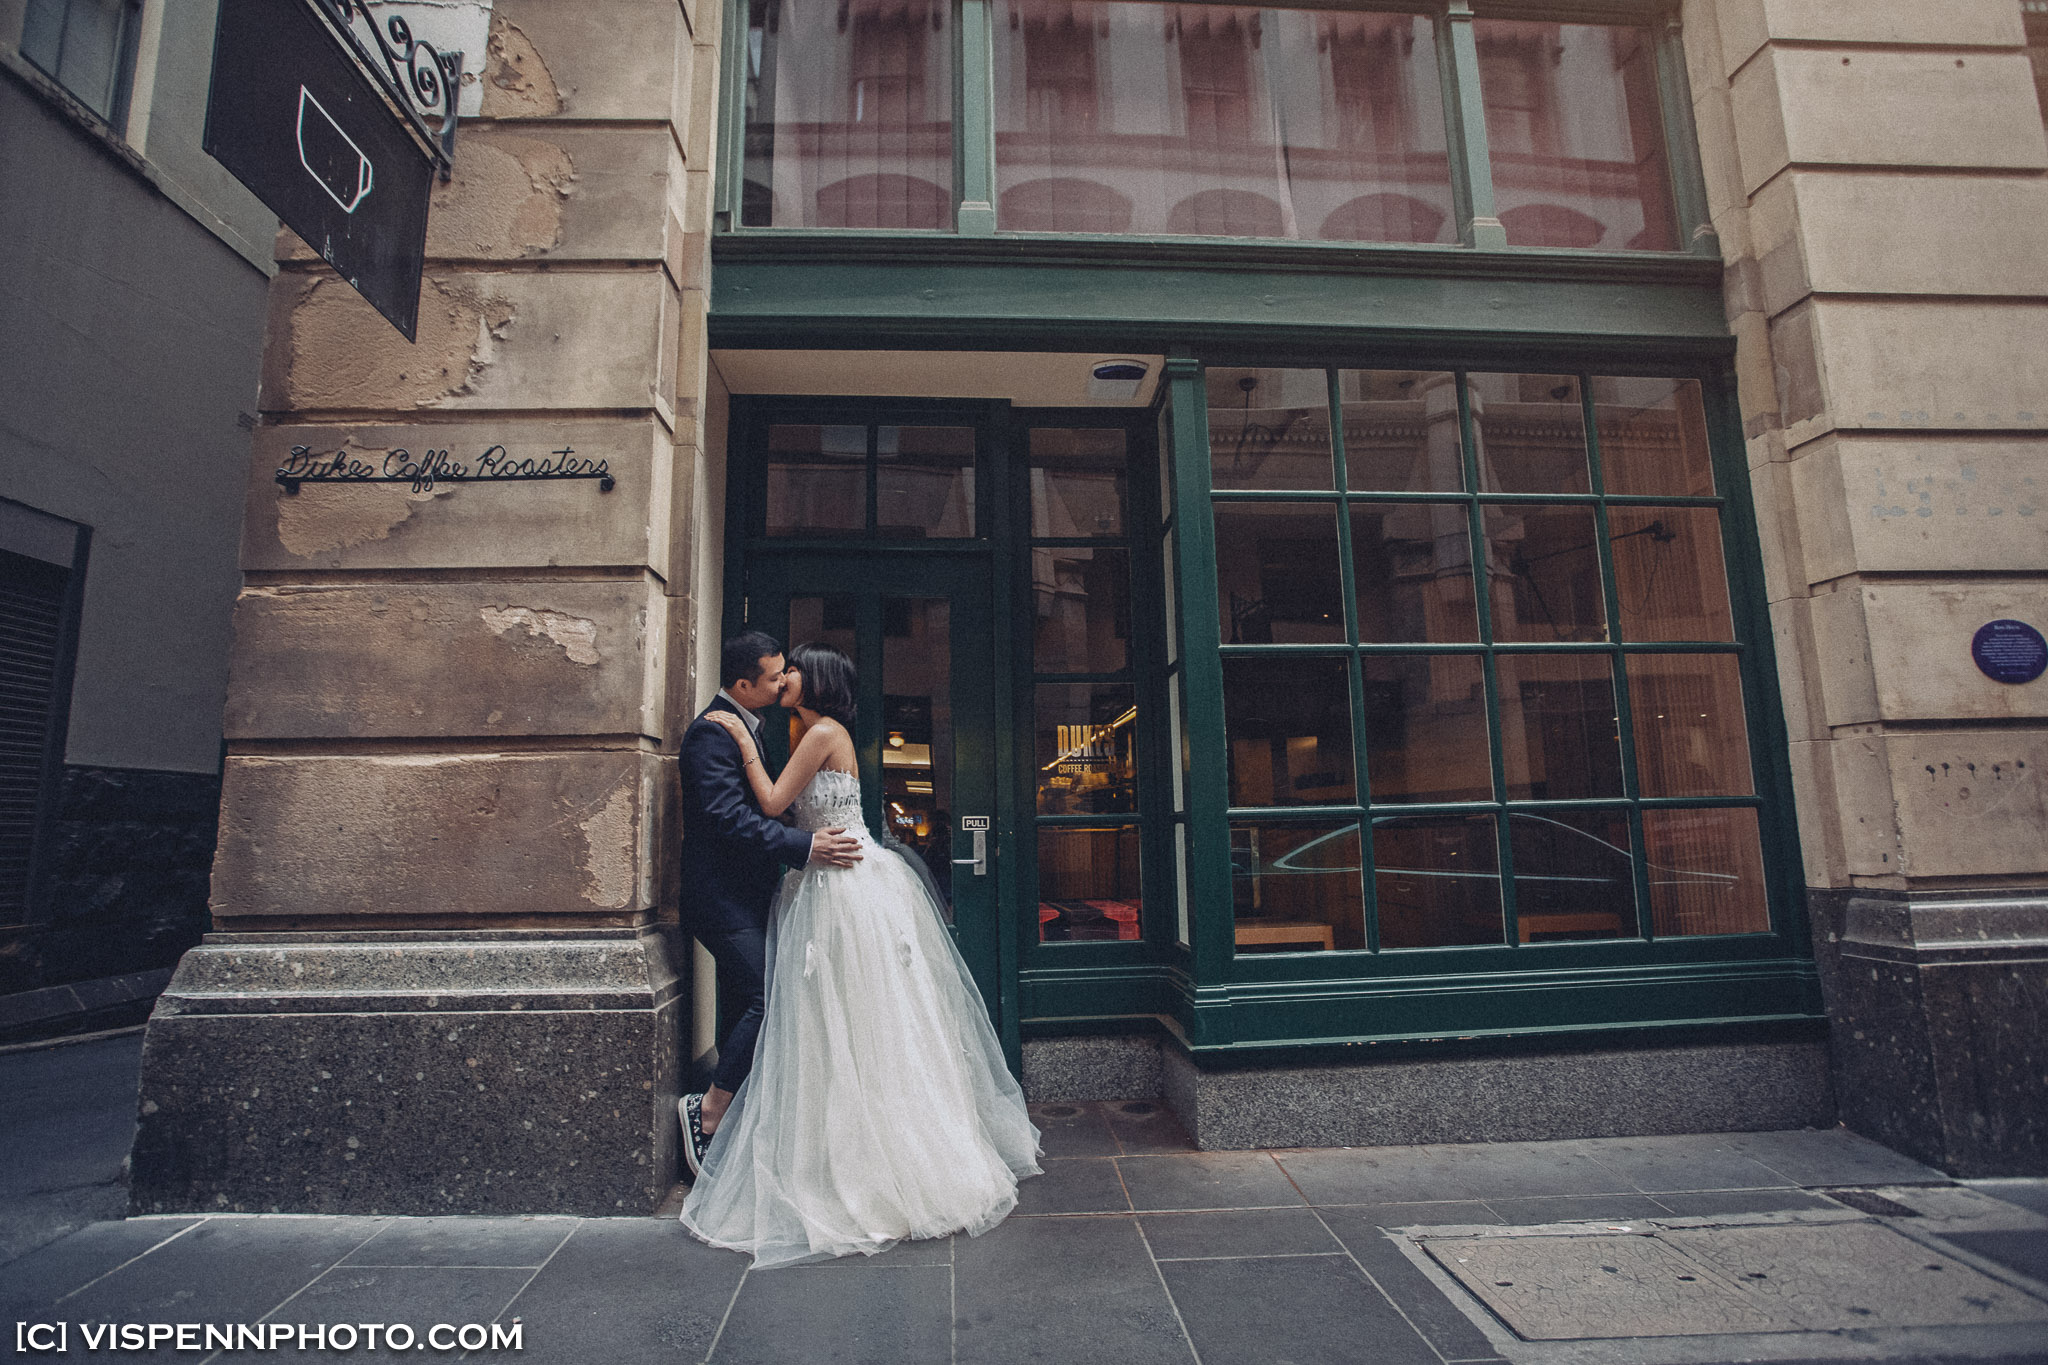 PRE WEDDING Photography Melbourne 5D3 7054